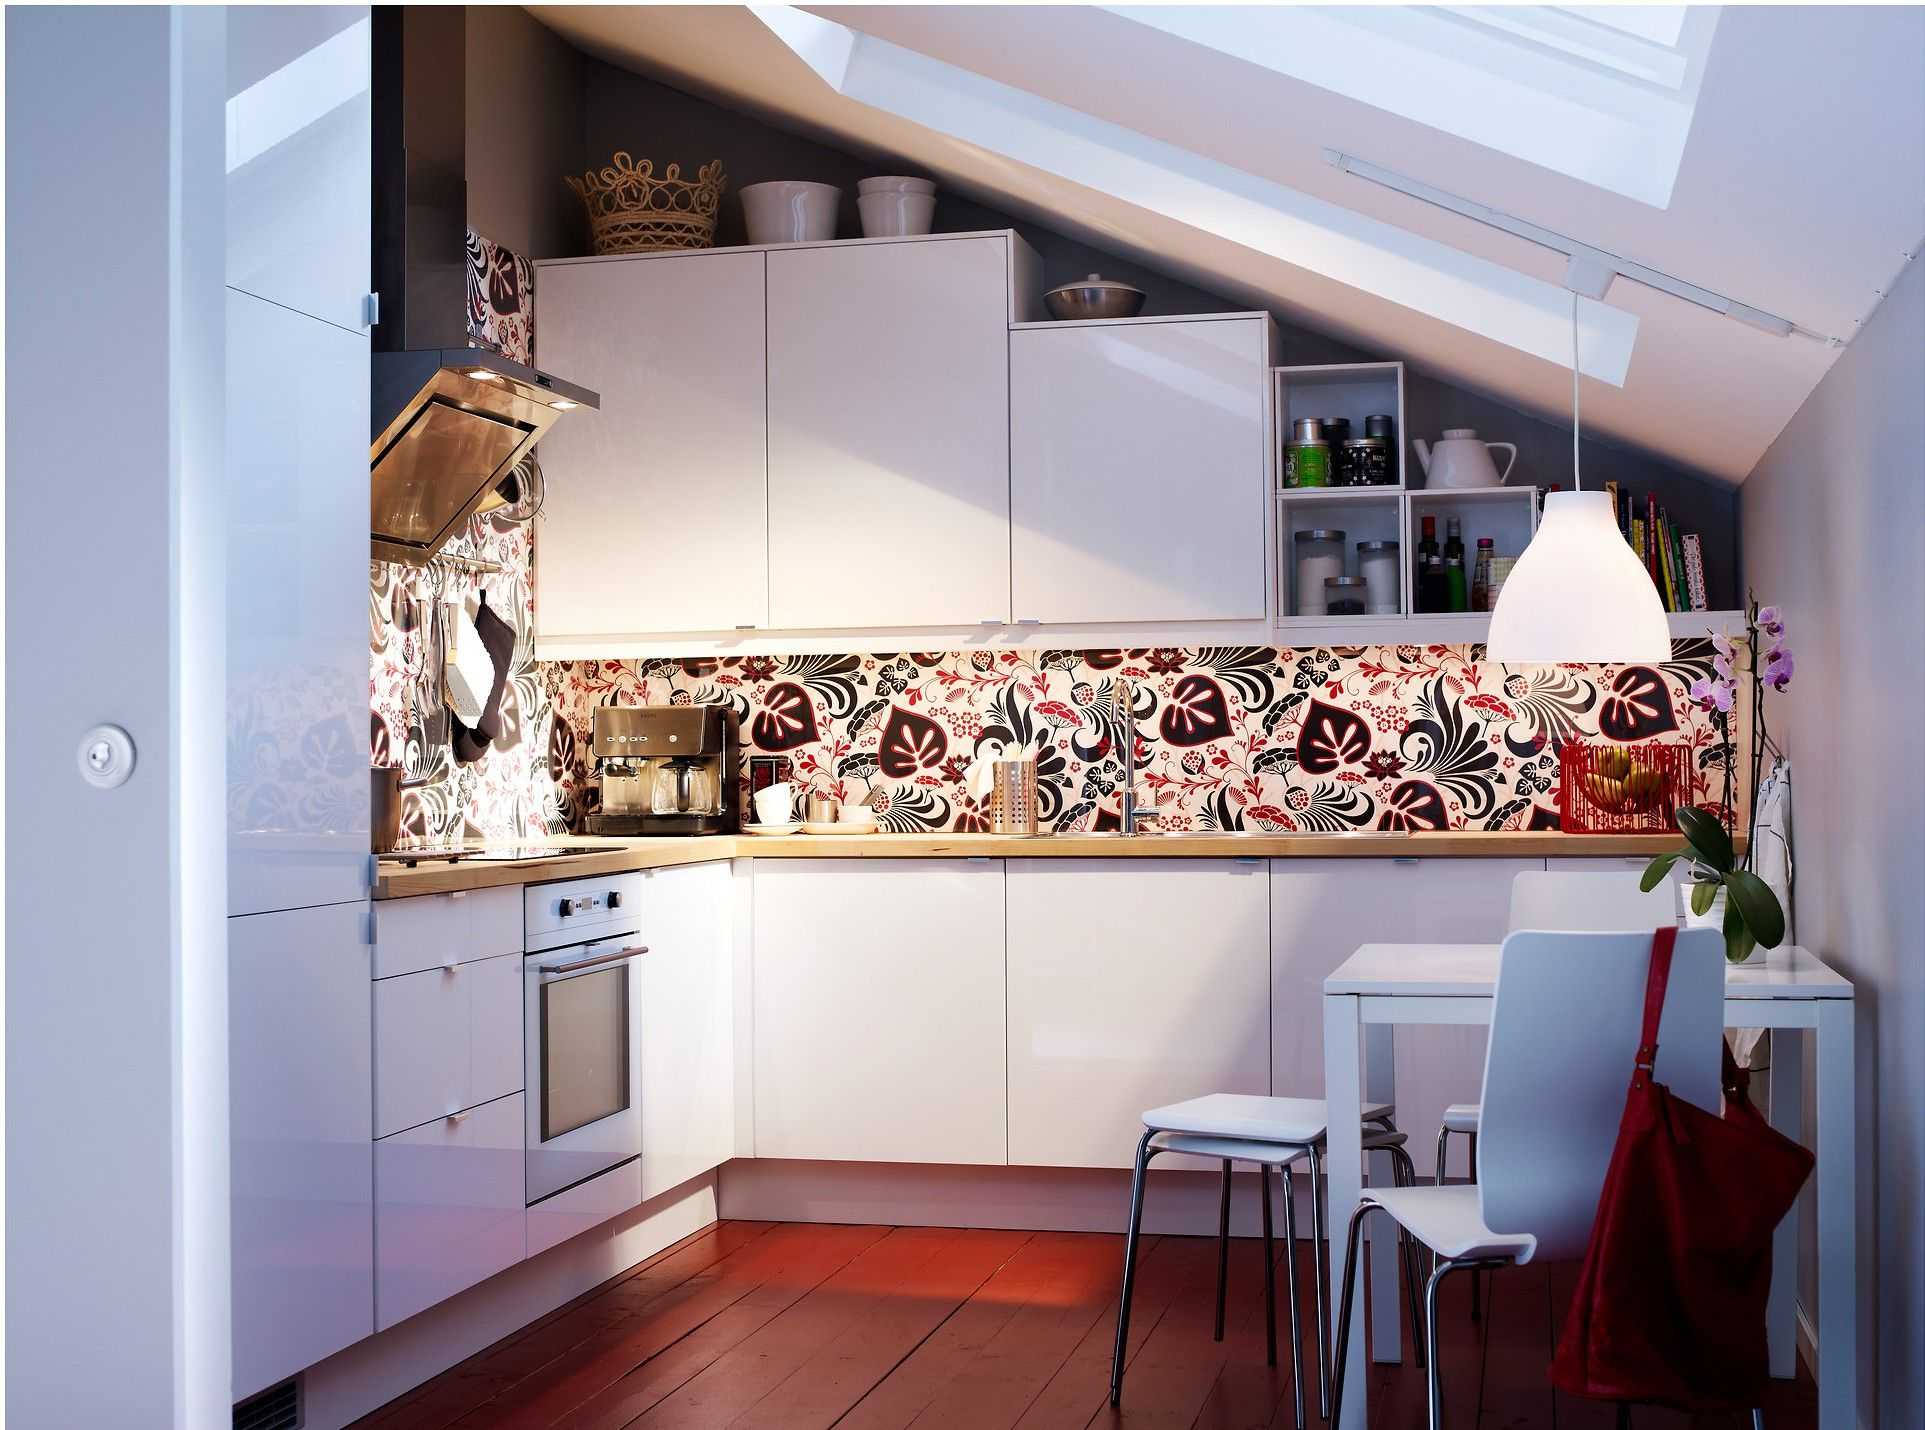 Progettare la cucina in | Small spaces and Spaces